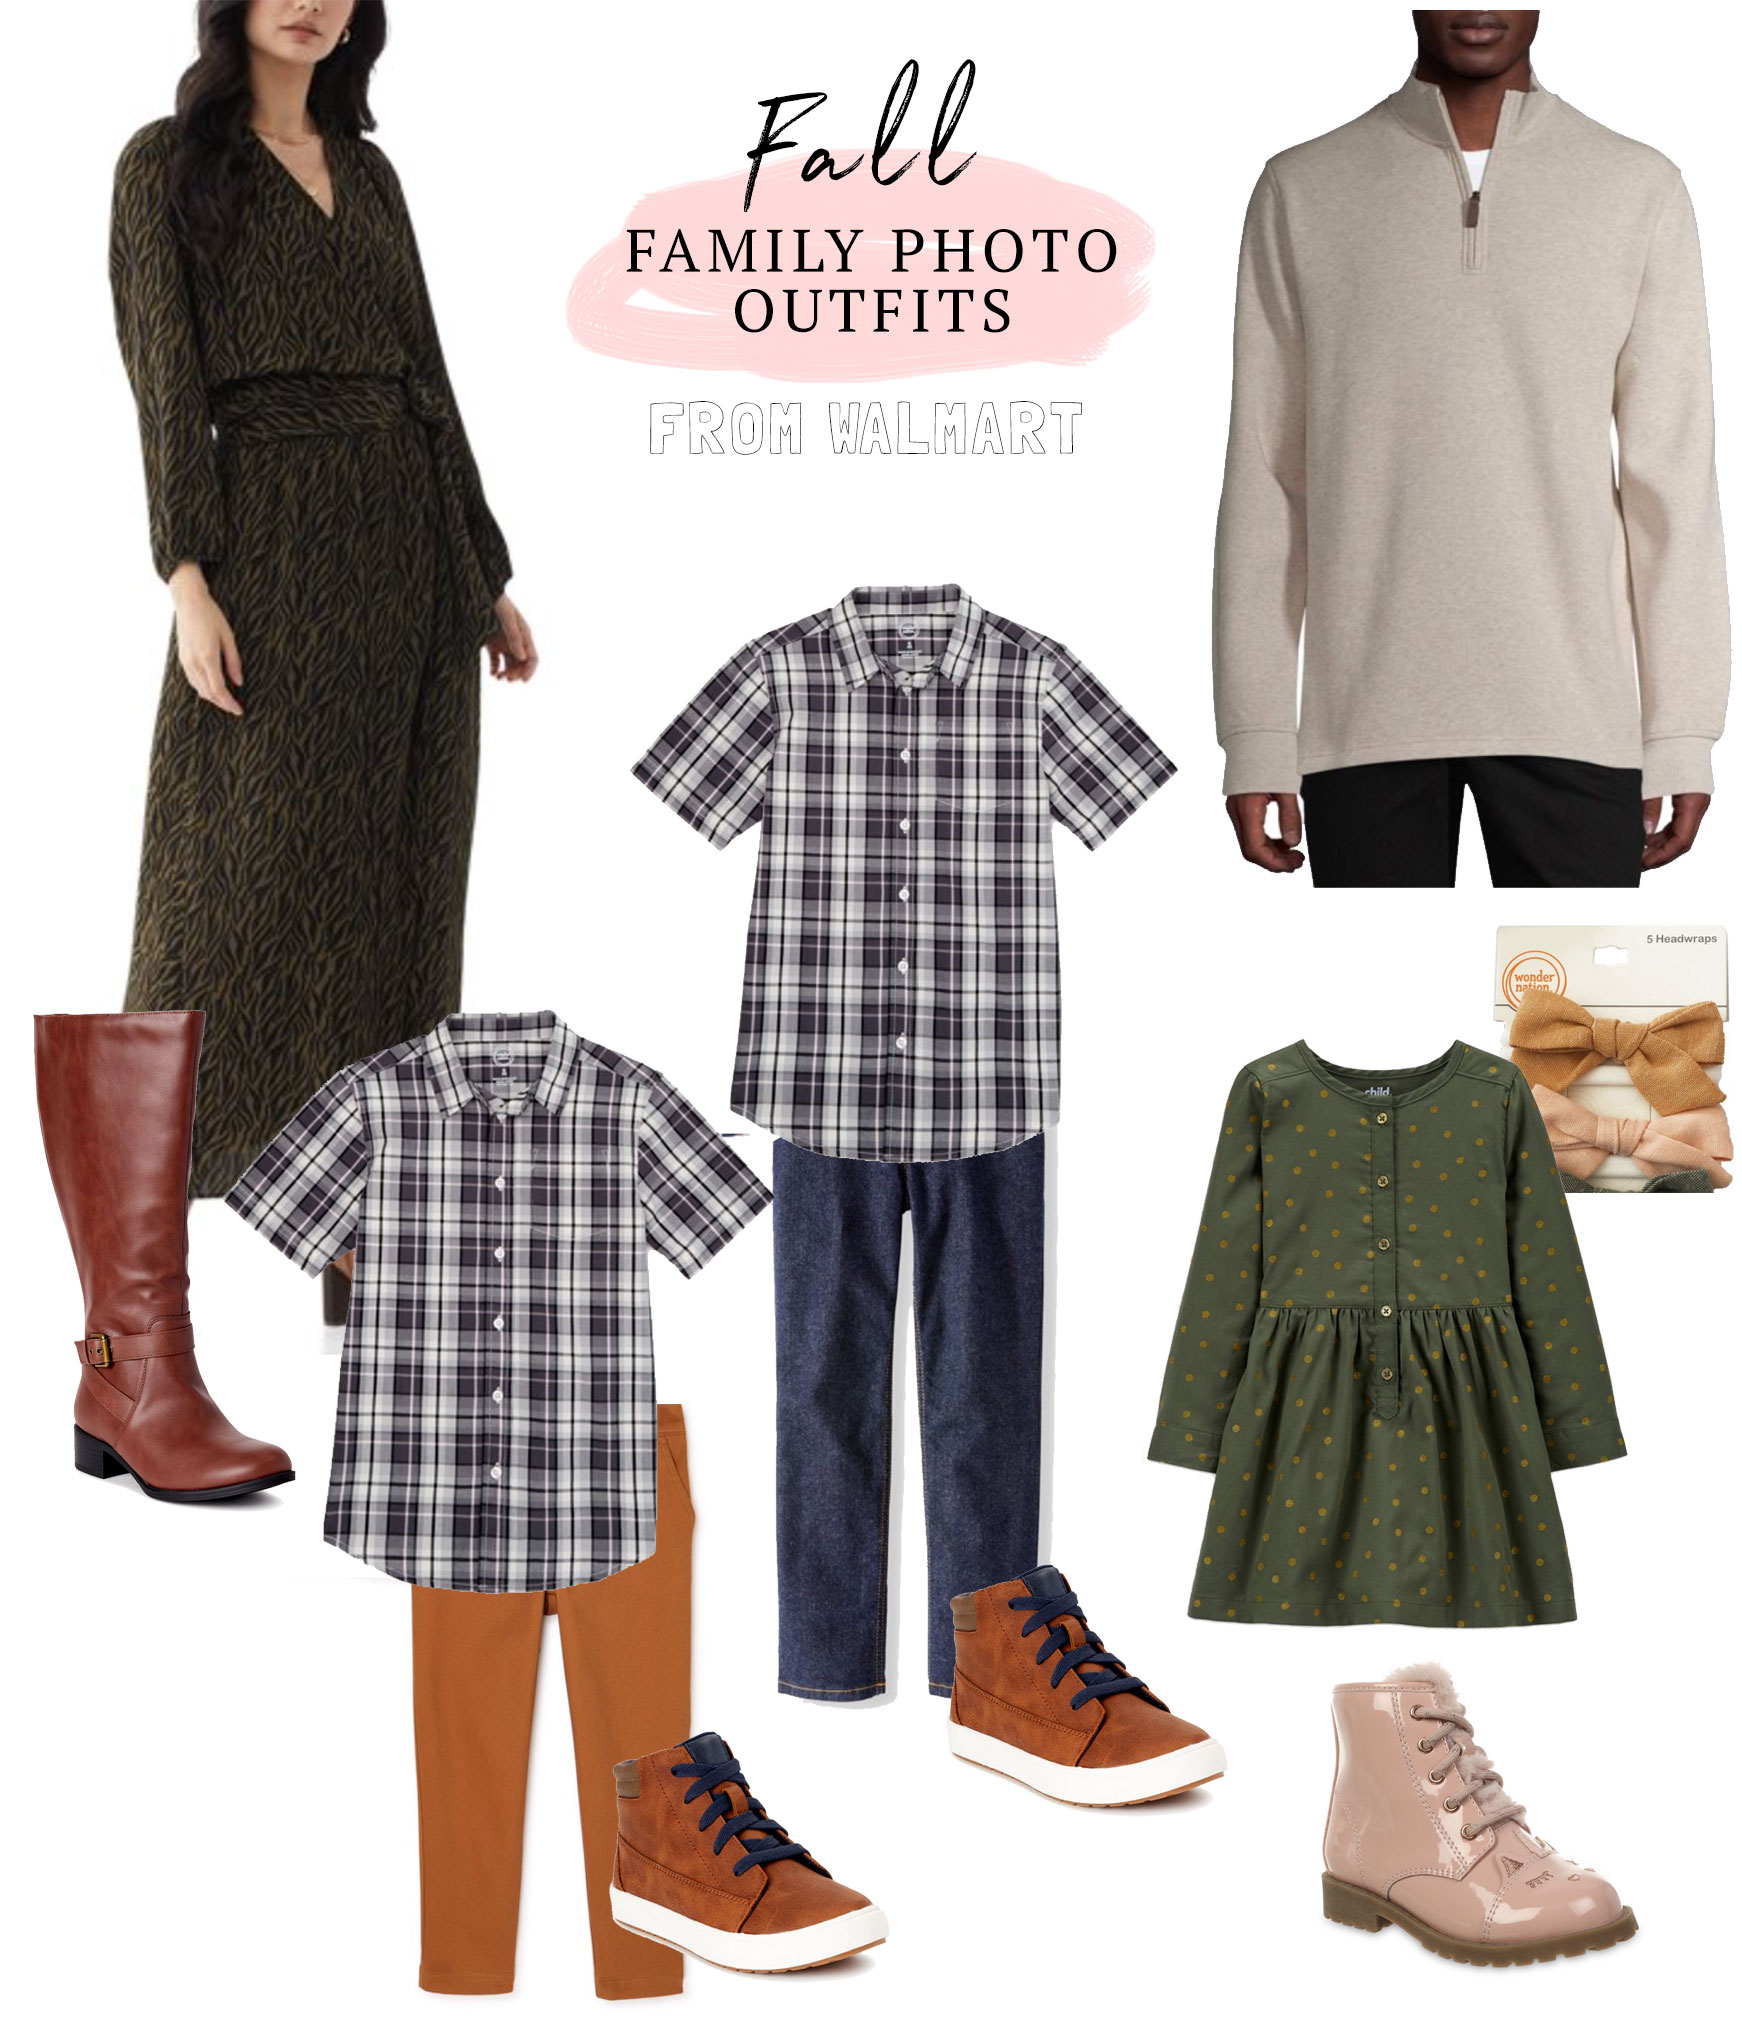 Fall Family Photos Outfit Ideas on a budget! All from Walmart!